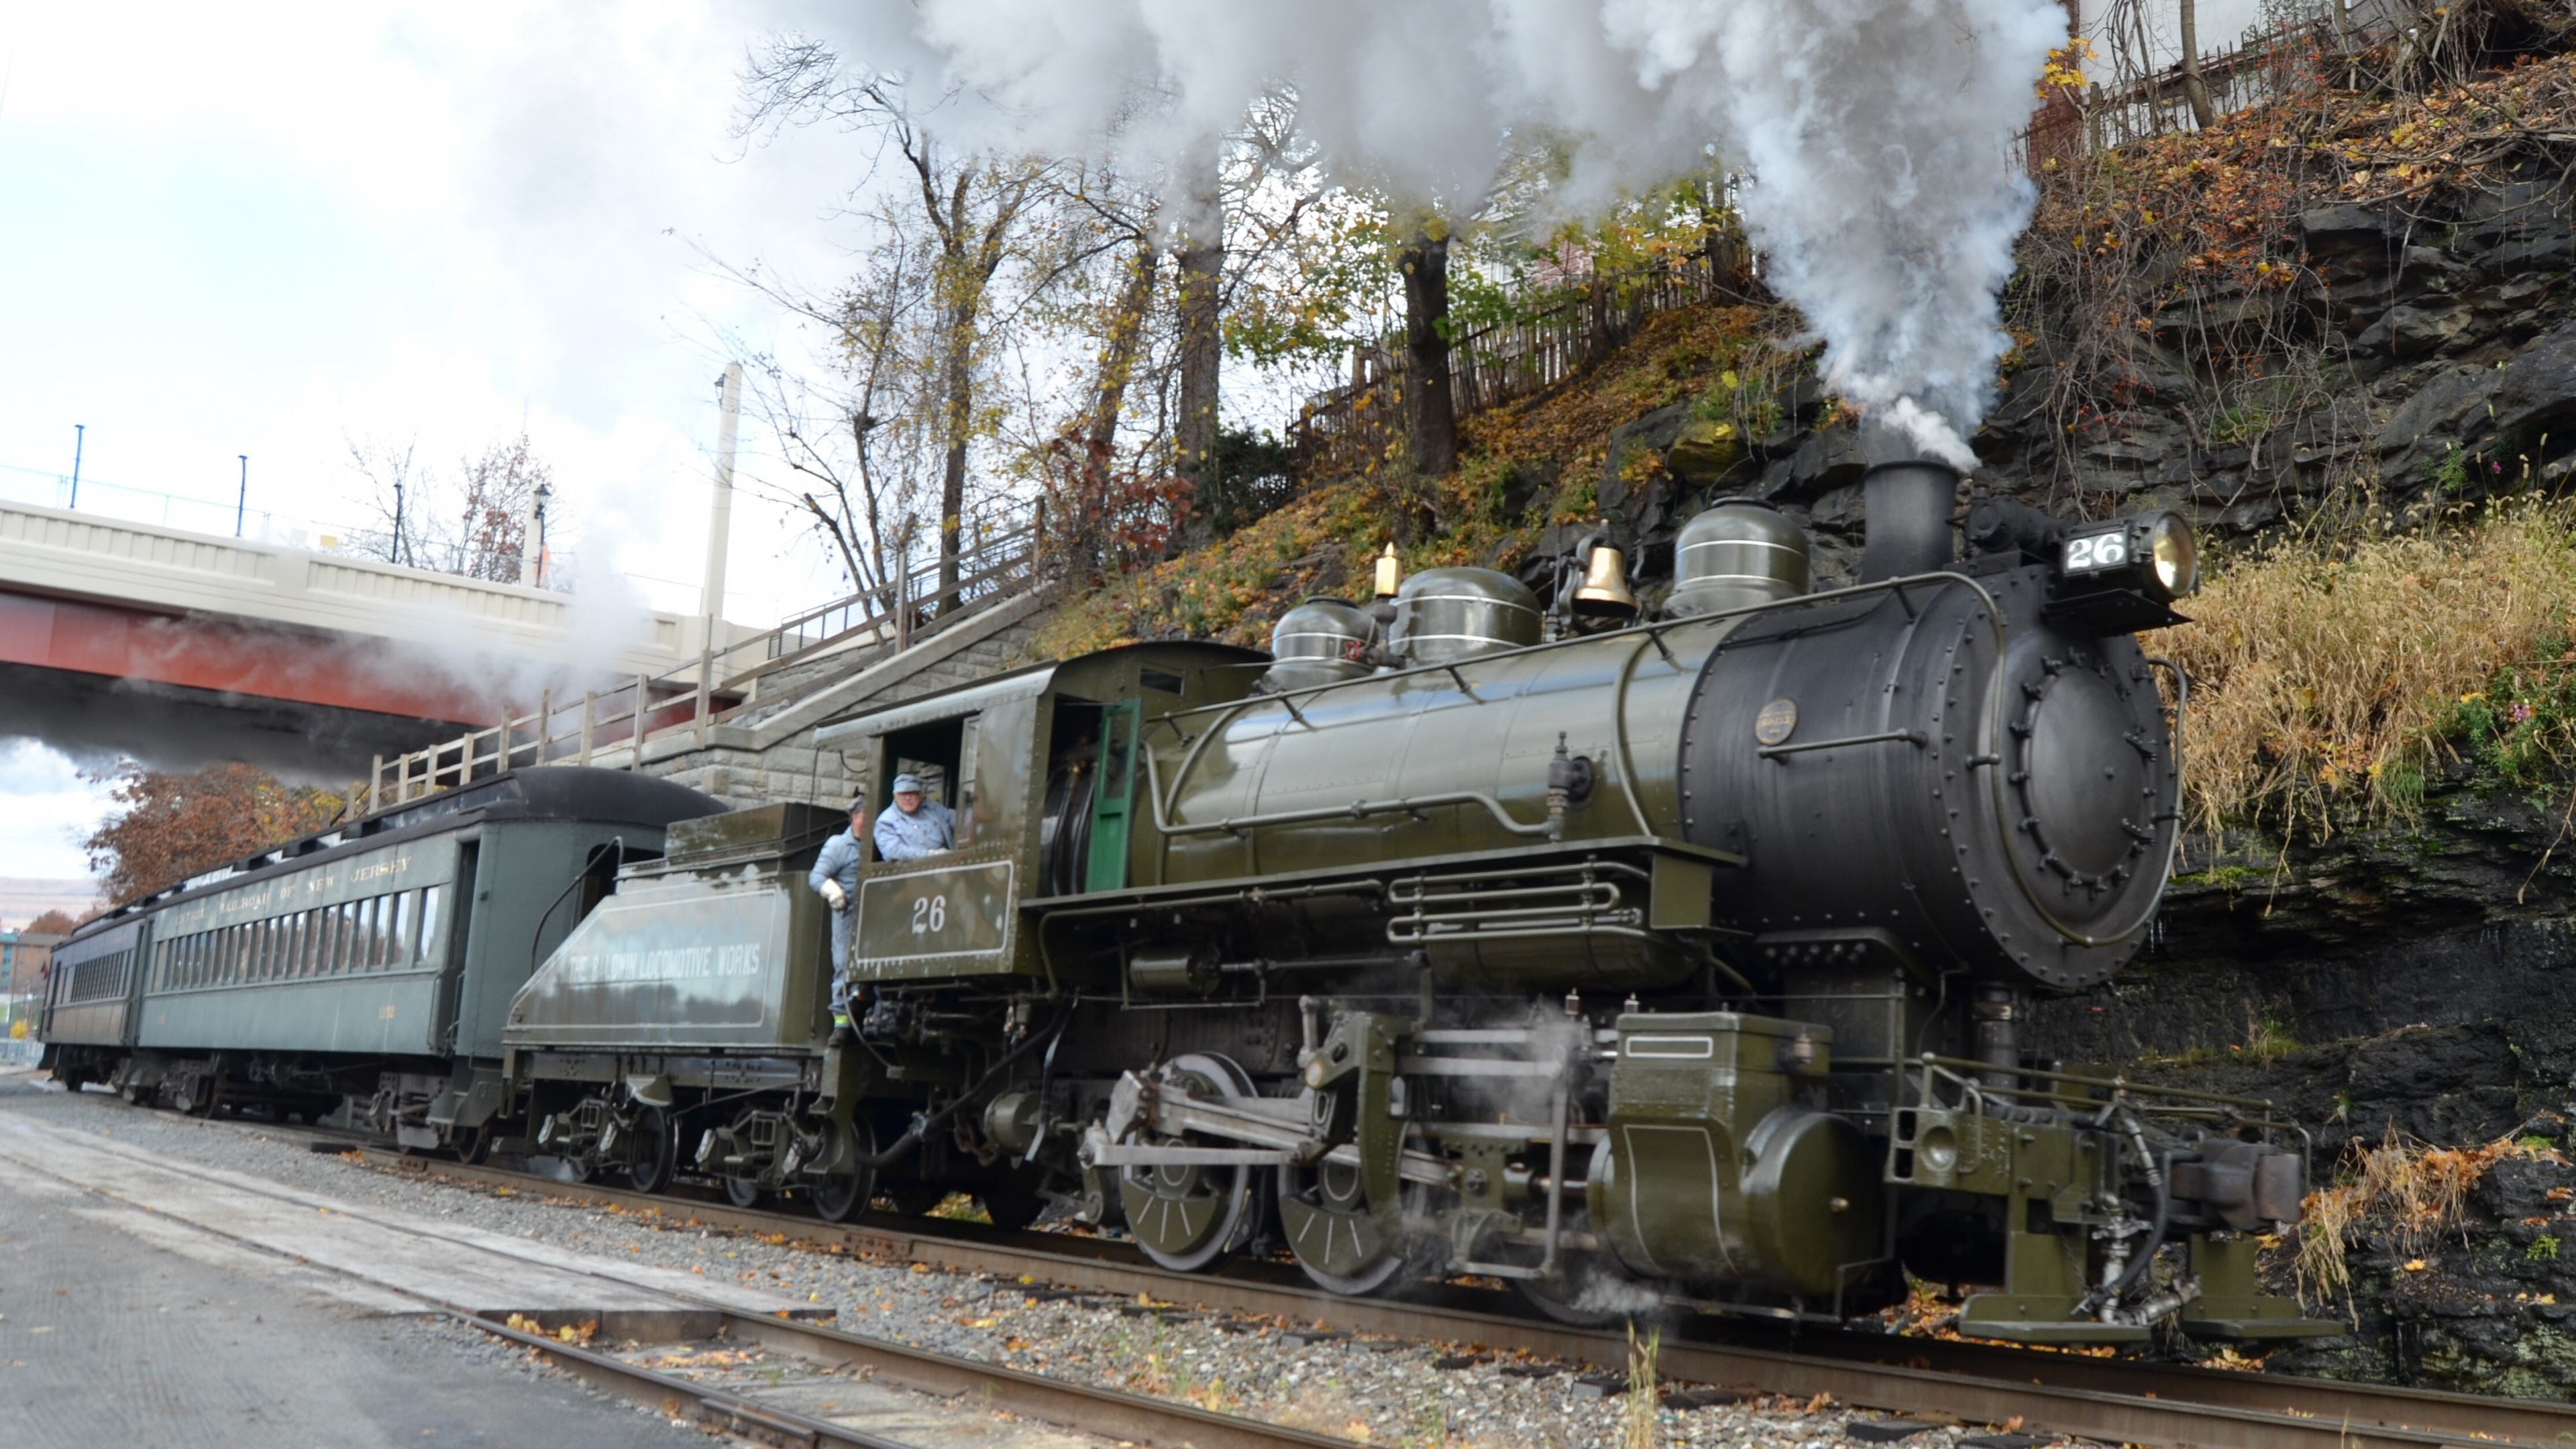 An olive-drab locomotive belches smoke as it travels on the tracks